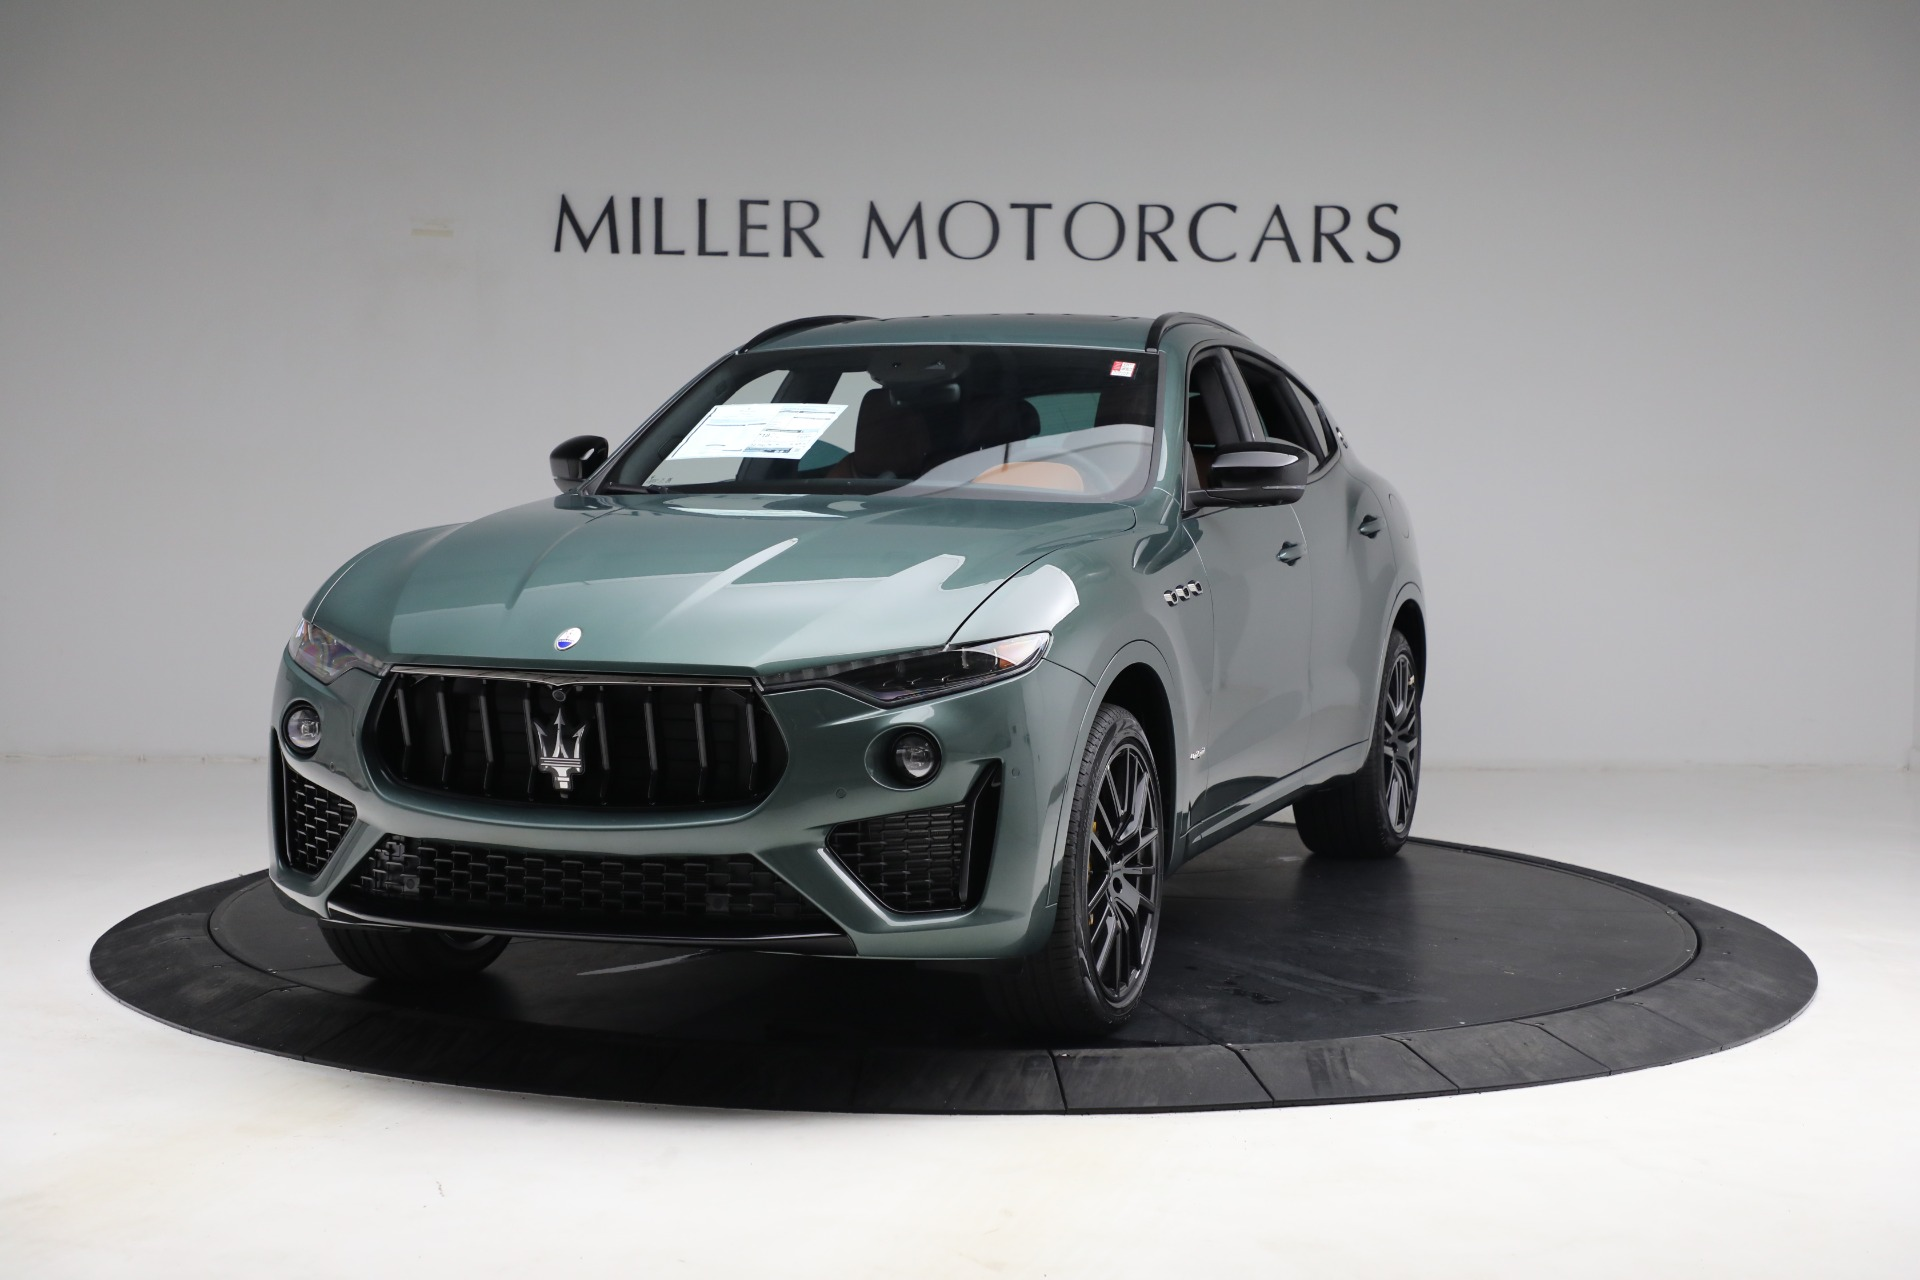 New 2021 Maserati Levante S GranSport for sale $112,899 at Pagani of Greenwich in Greenwich CT 06830 1